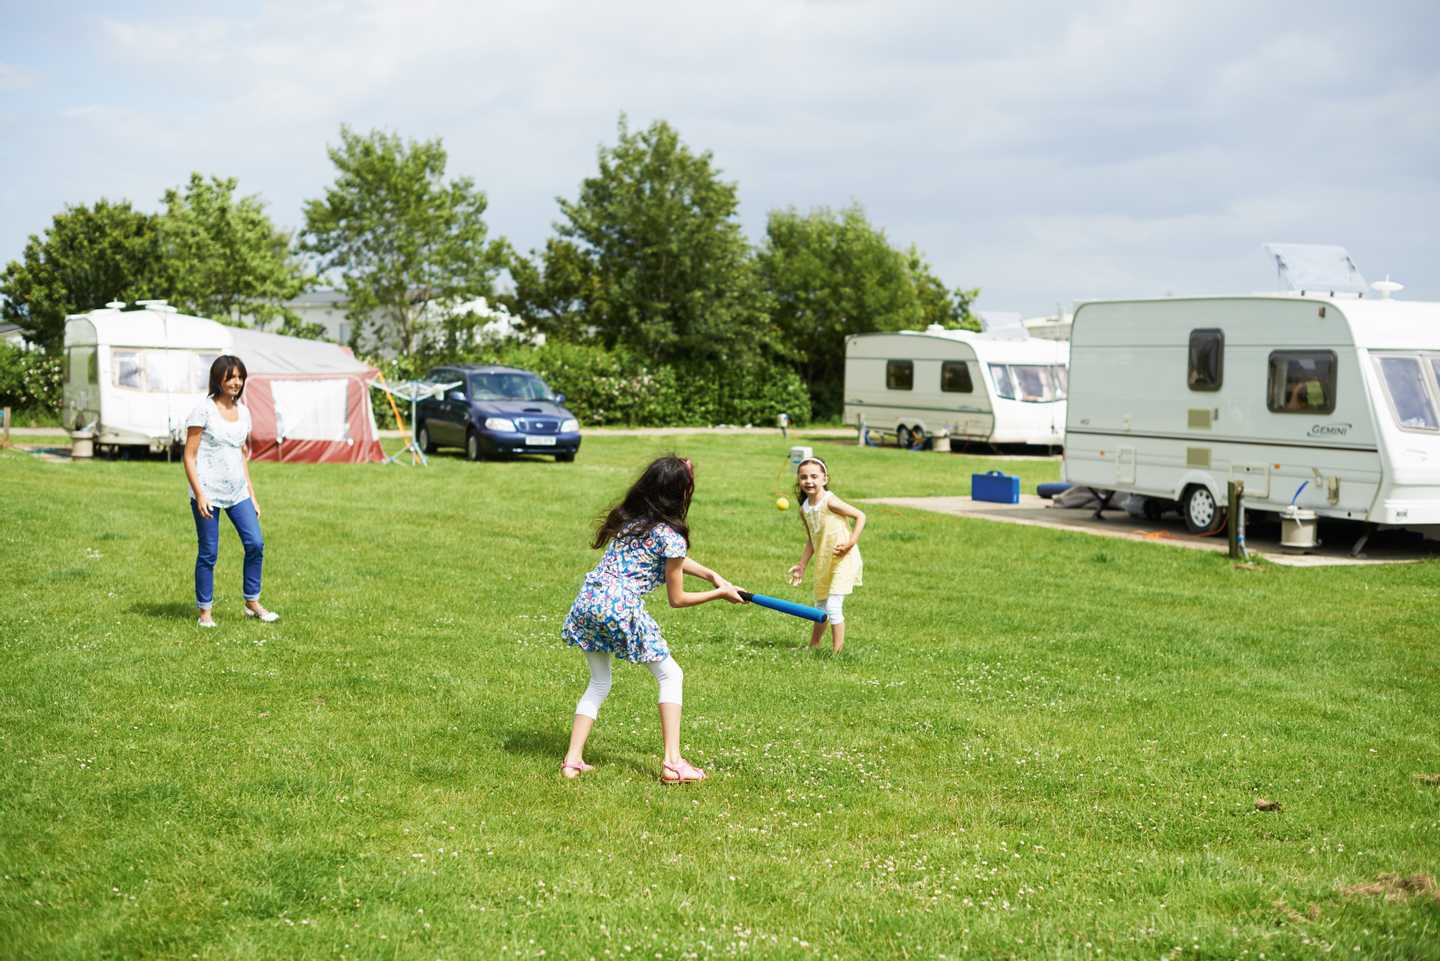 Guests playing in the touring area